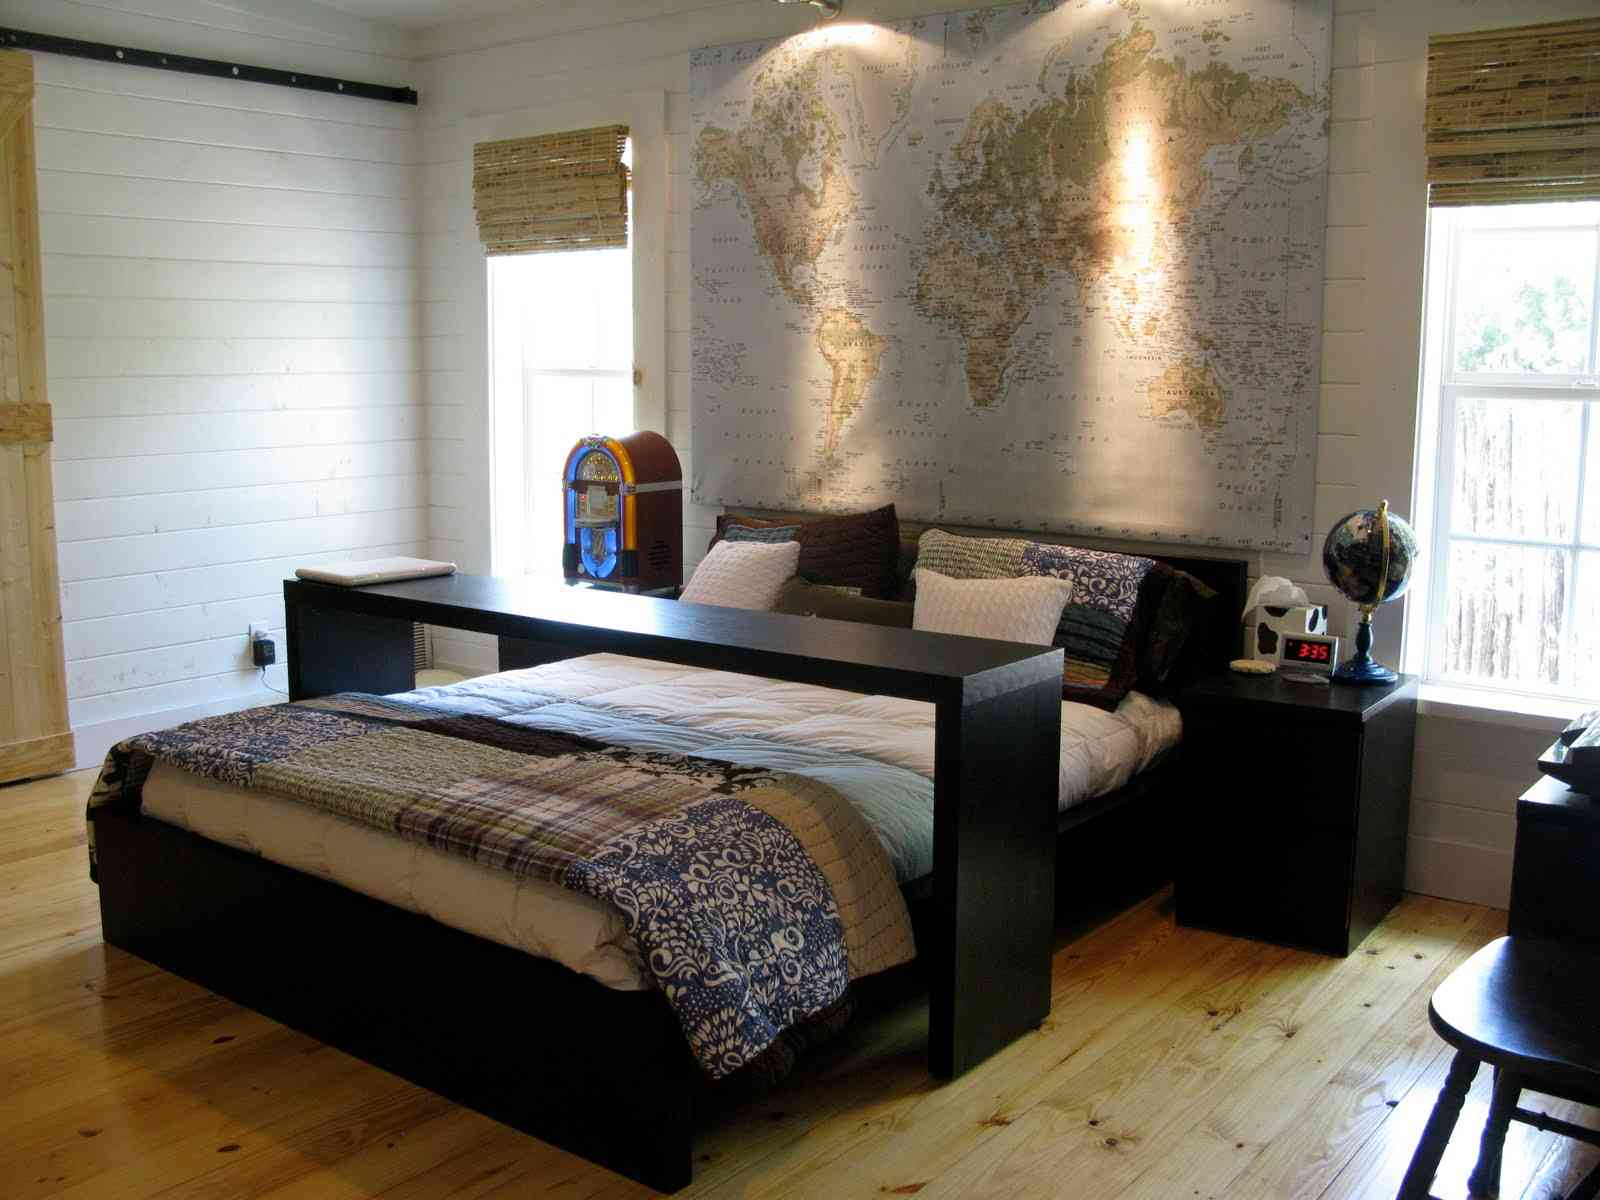 ikea twin bedroom furniture photo - 2